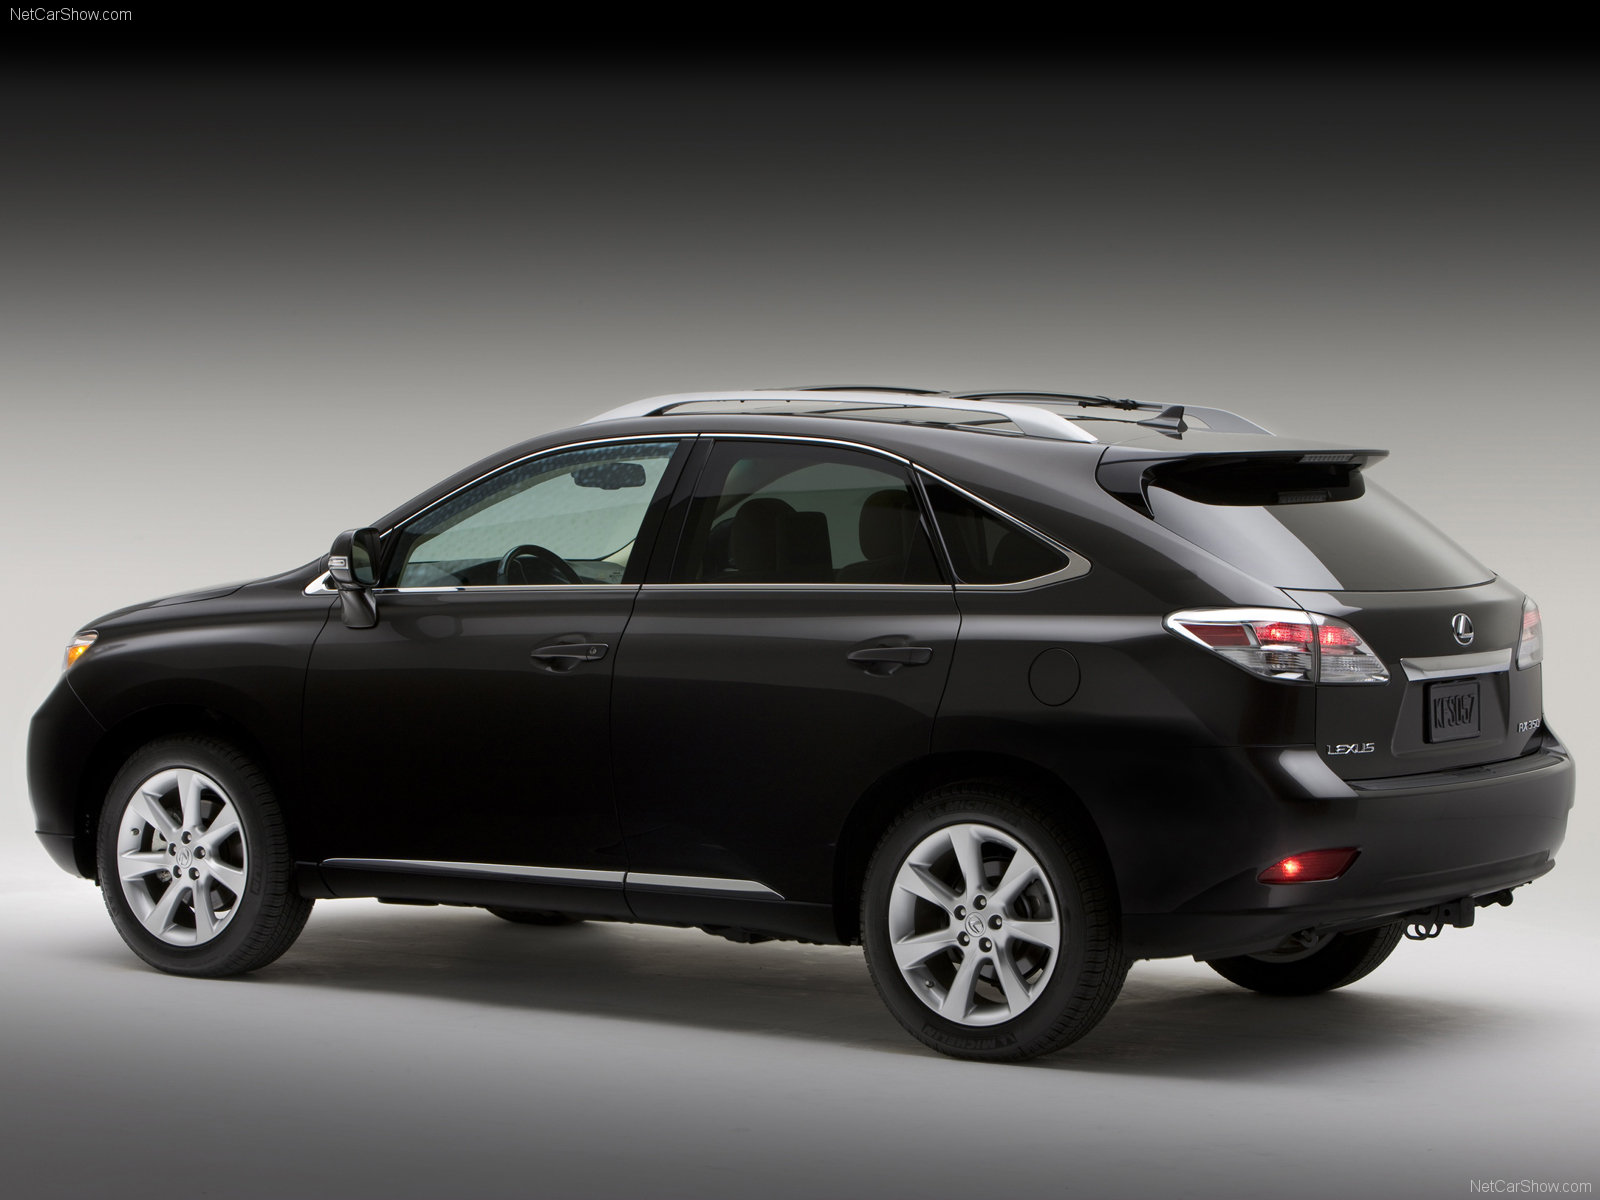 lexus rx 350 photos photogallery with 116 pics. Black Bedroom Furniture Sets. Home Design Ideas